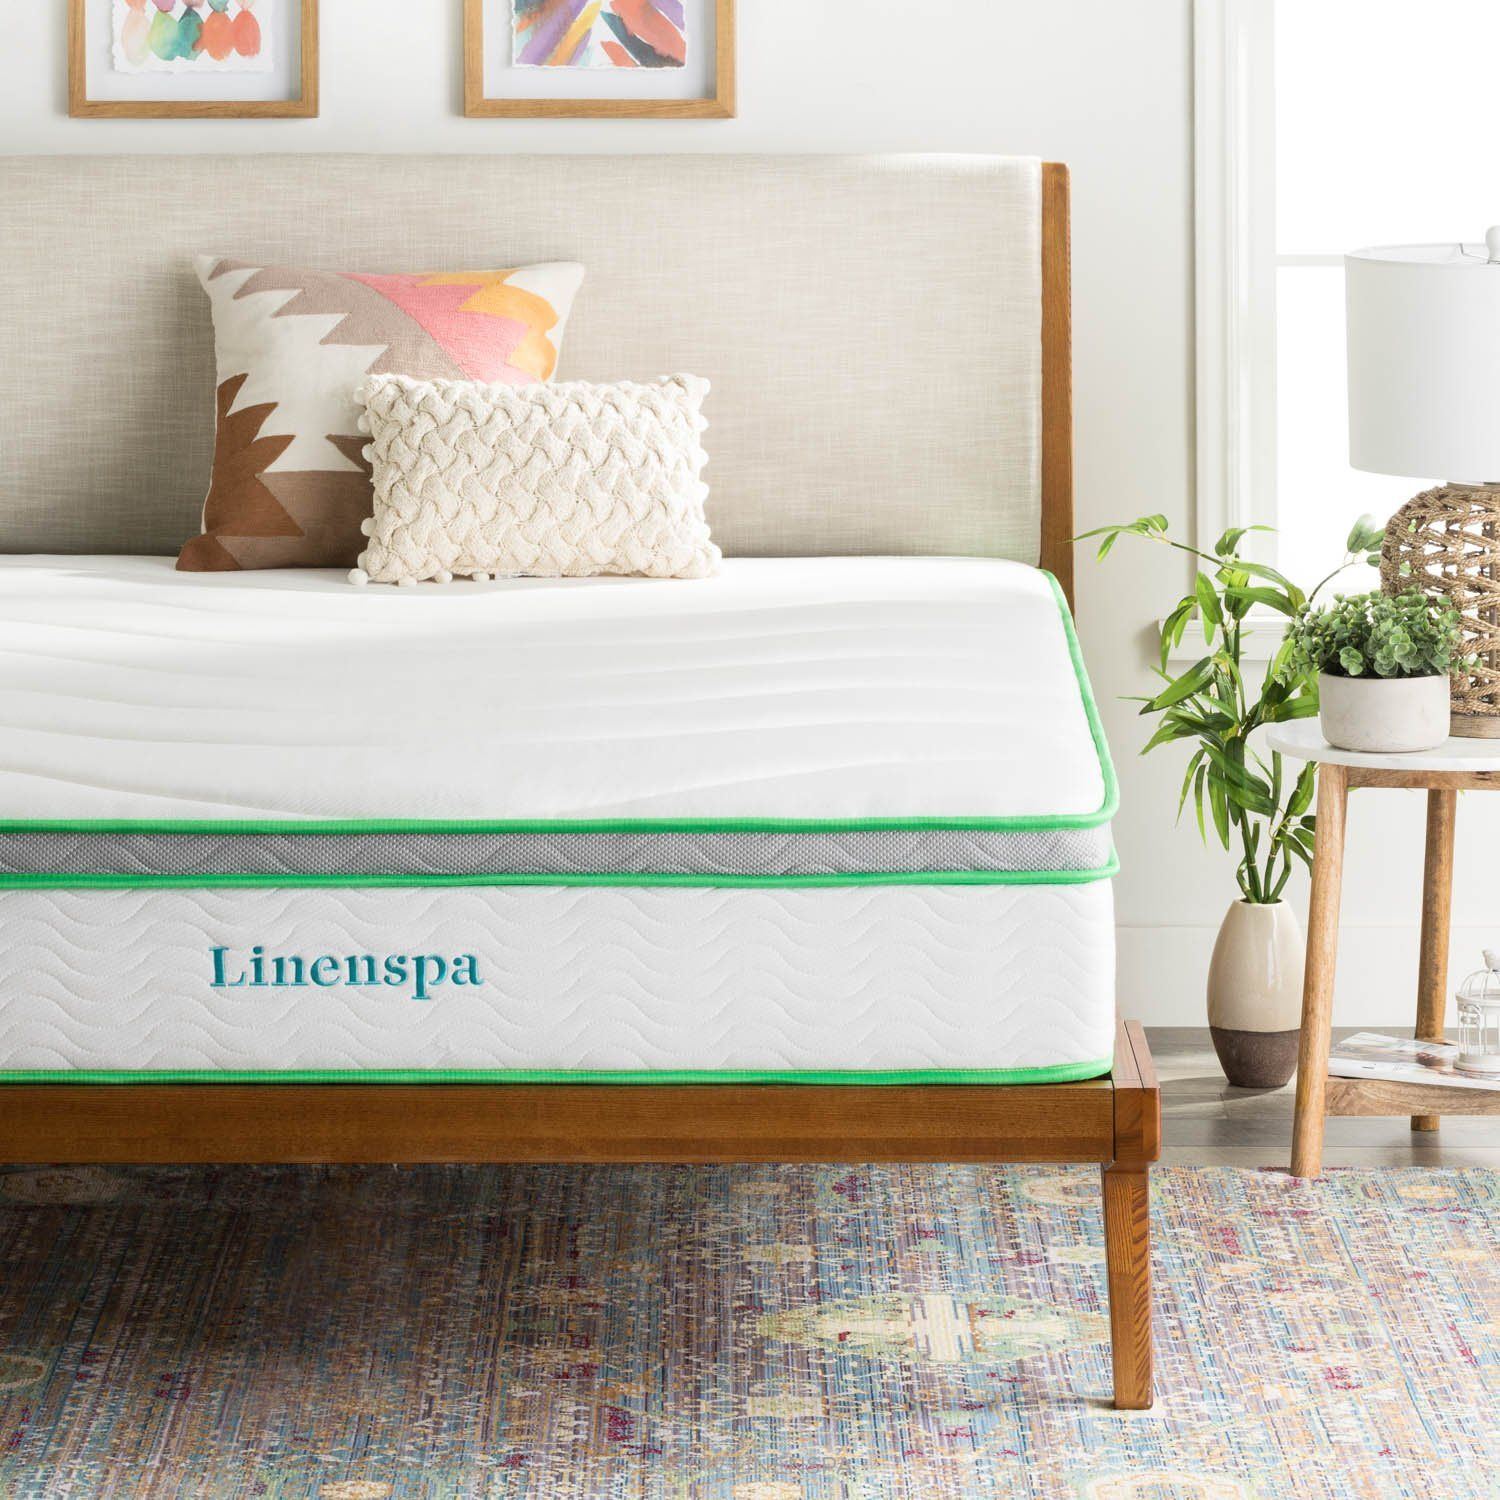 linenspa 10 inch latex hybrid mattress supportive responsive